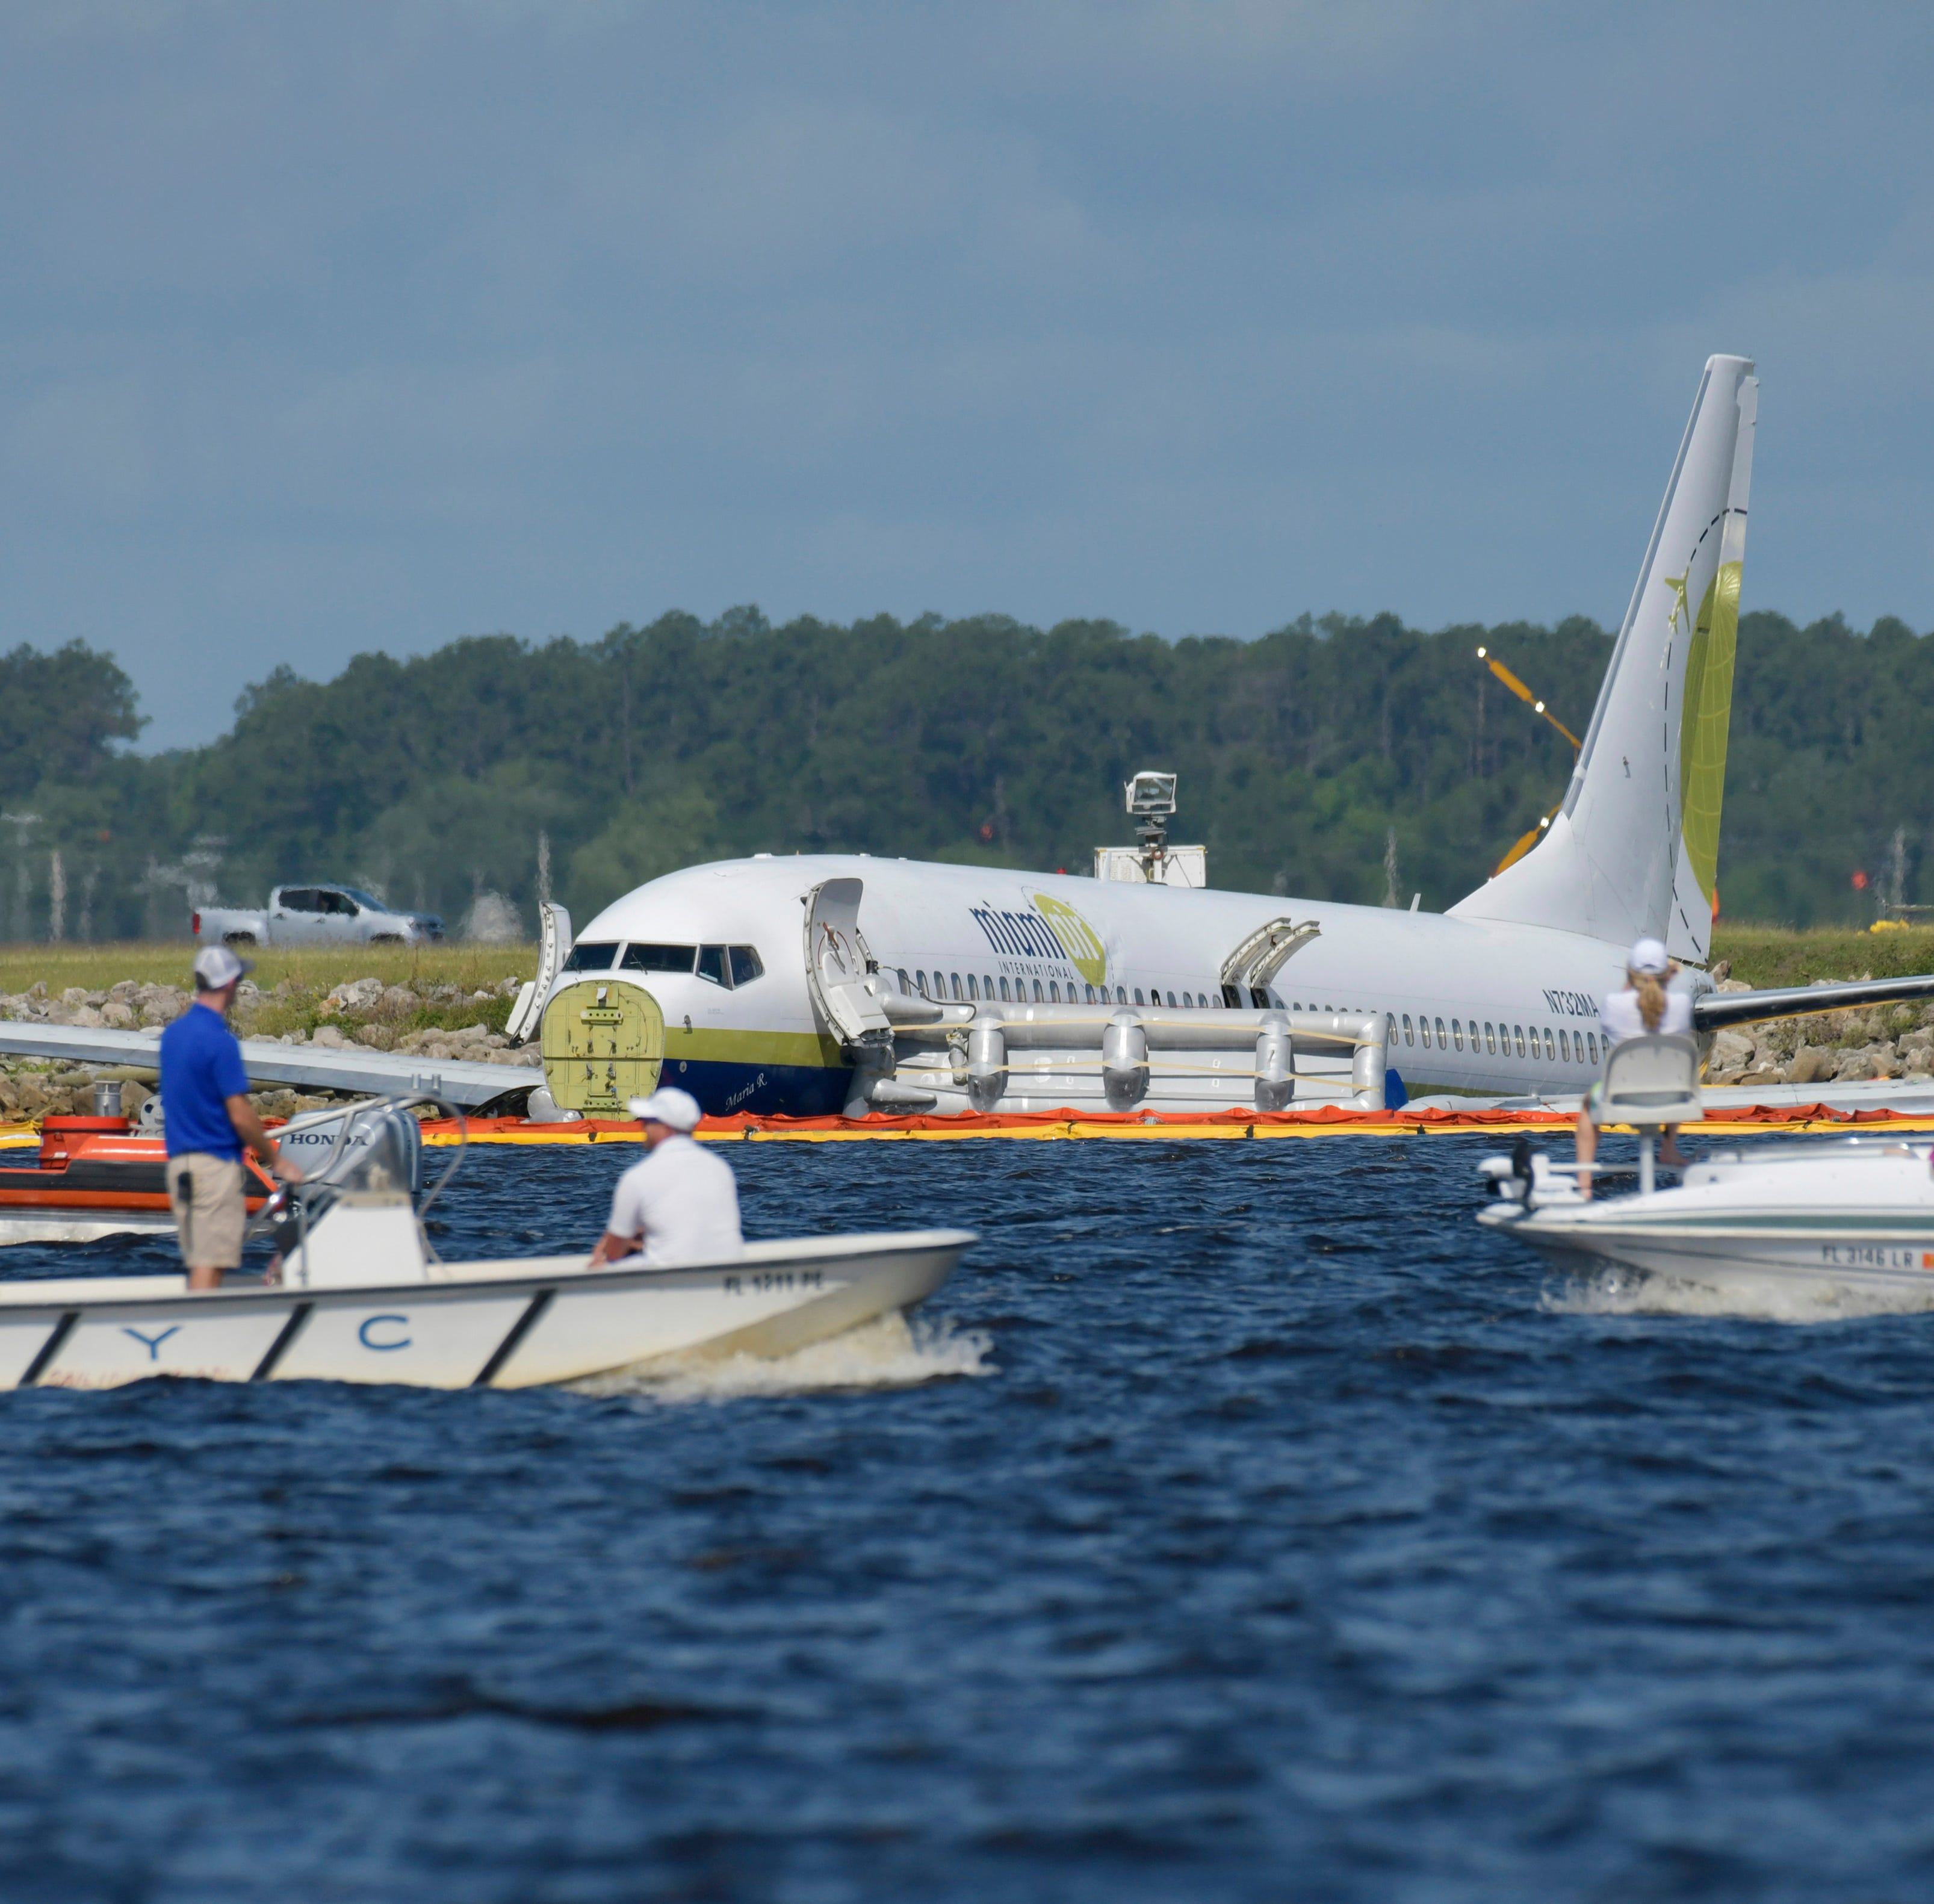 Black box found after crash landing of Boeing 737 in Jacksonville, Florida; plane had a/c problems earlier